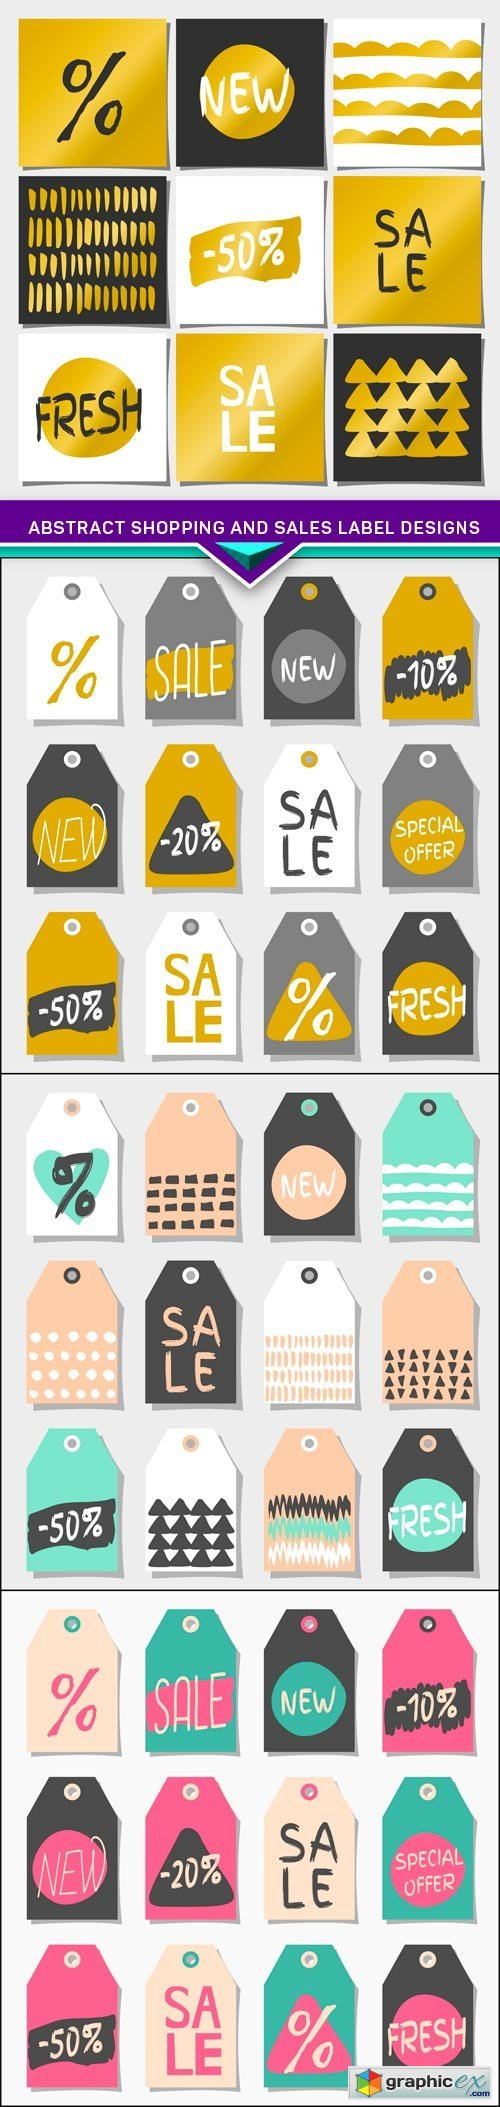 Abstract Shopping and Sales Label Designs 4X EPS